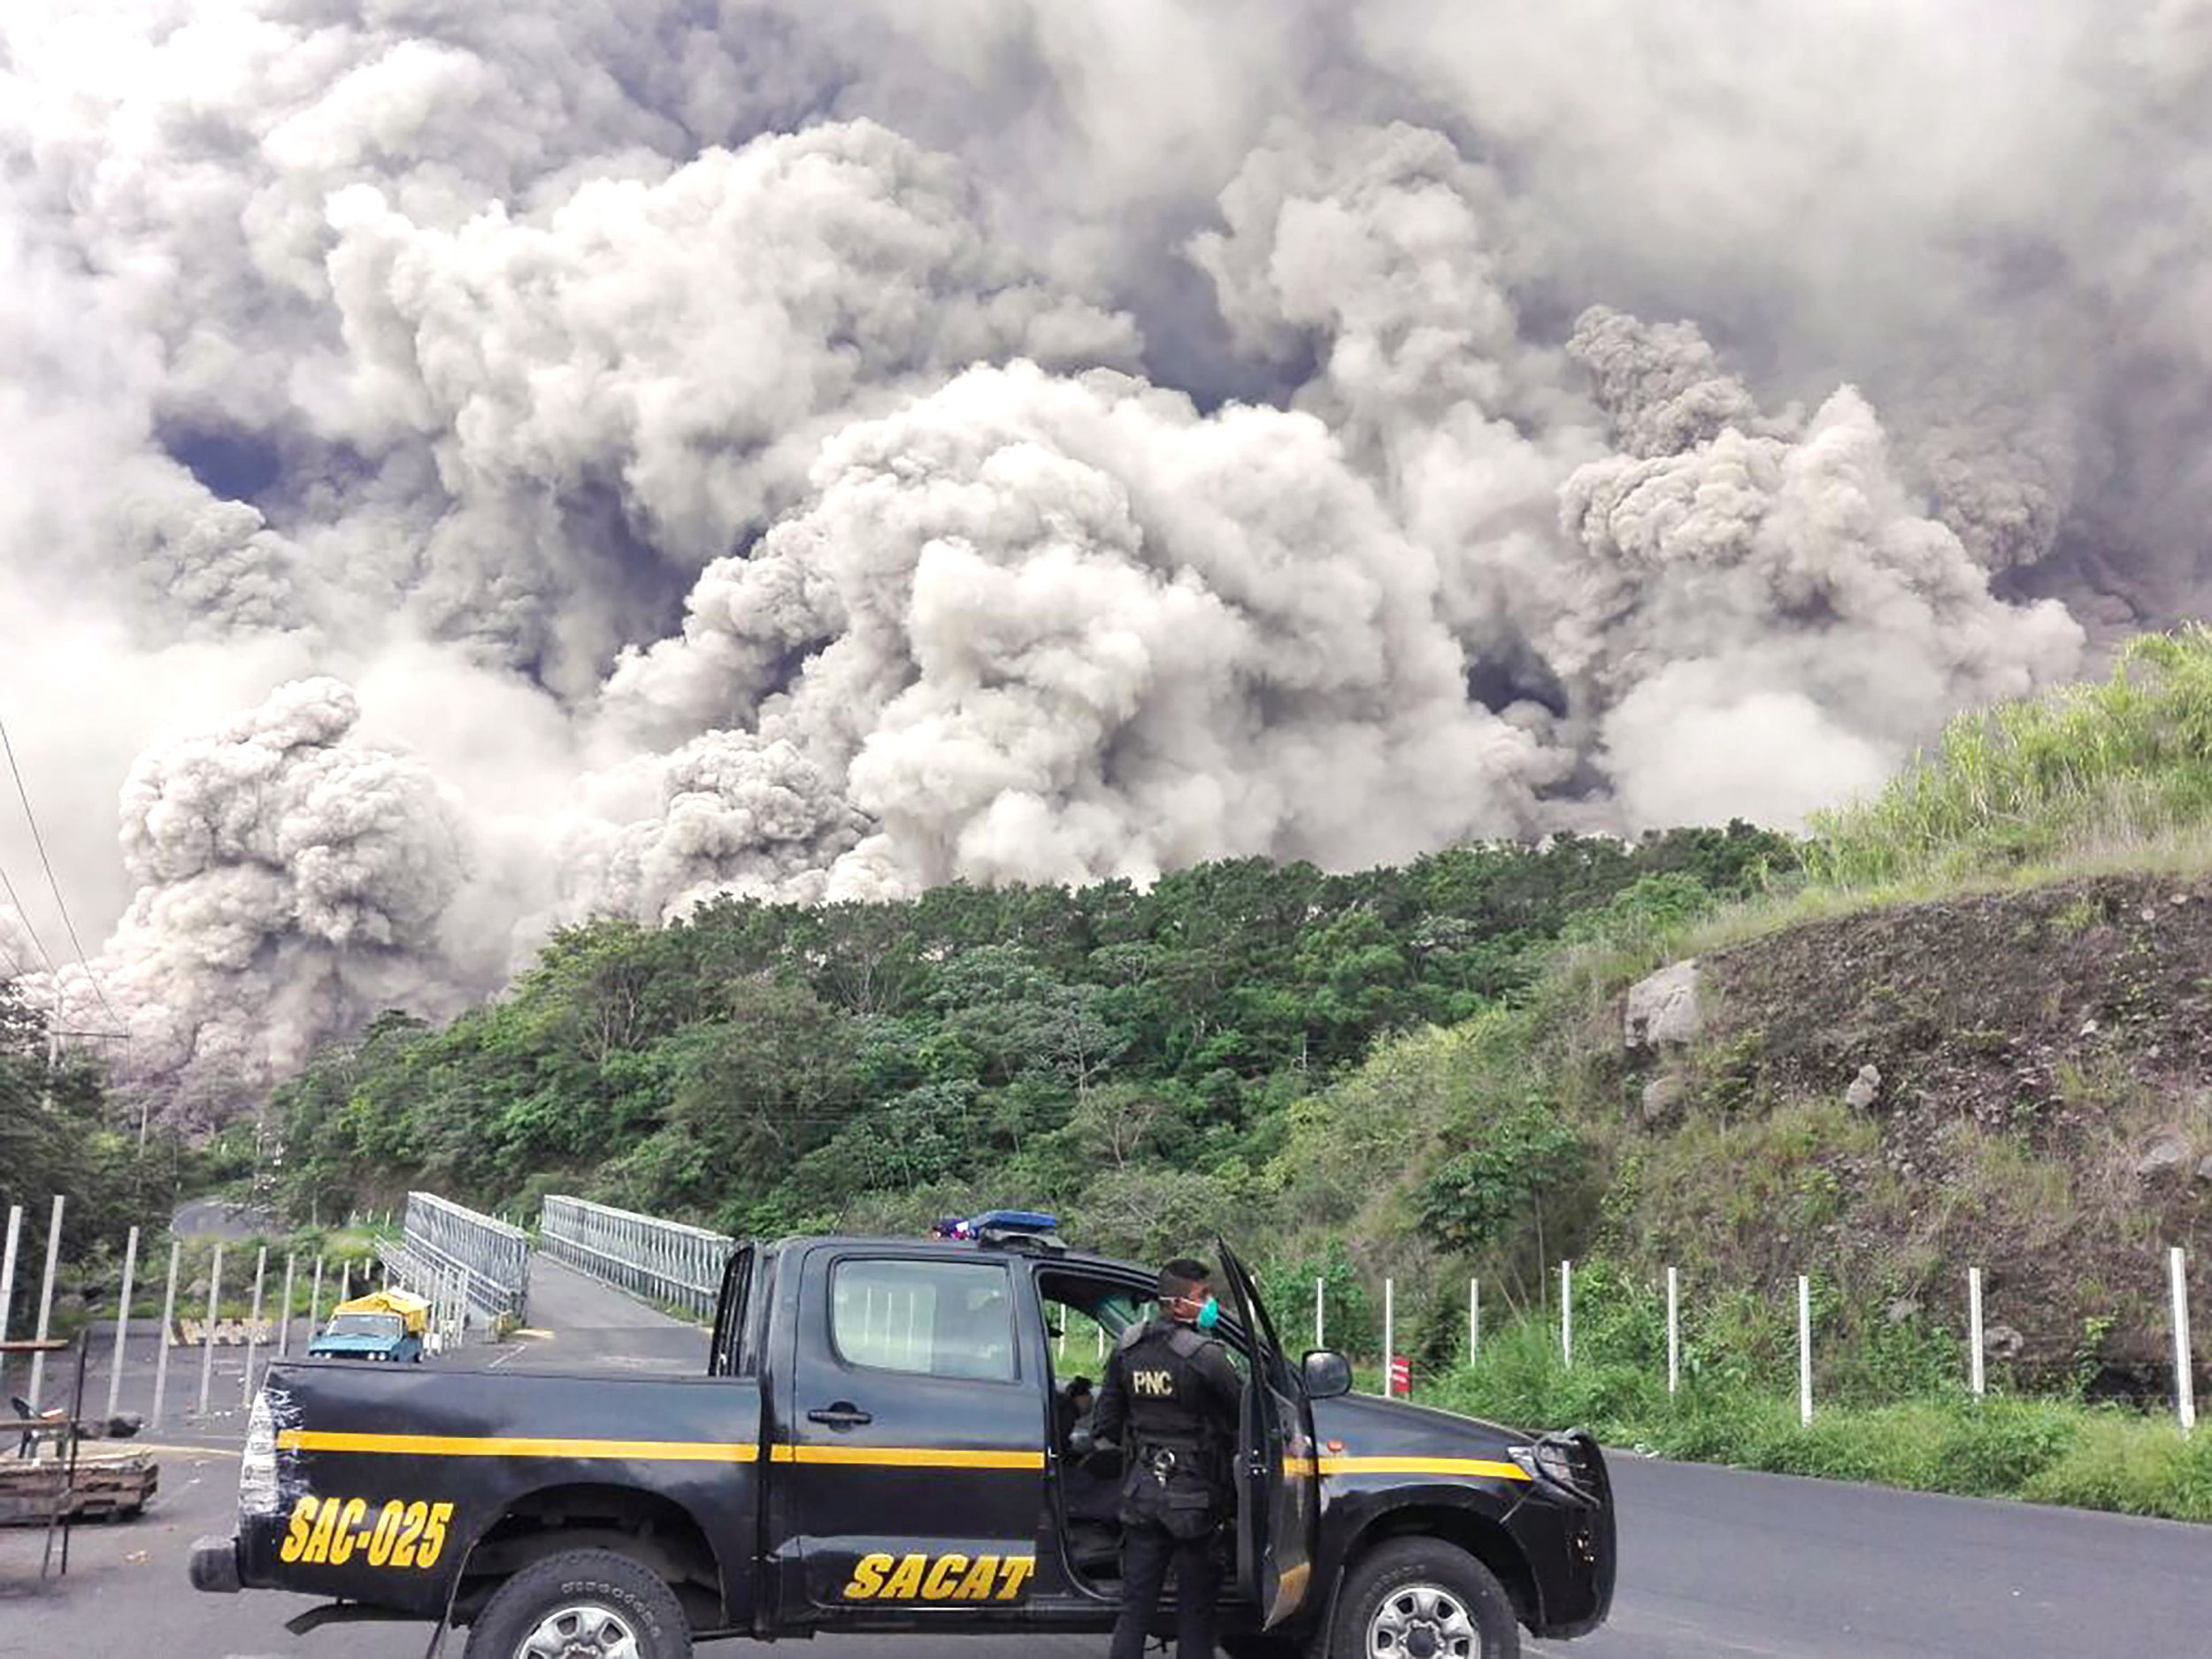 This handout picture released by the National Police of Guatemala shows policemen during search operations around Volcano Fuego after an eruption in Guatemala on June 3, 2018. Emergency workers resumed on Monday for Guatemalans missing after the eruption of the Fuego volcano on June 3, which belched out clouds of ash and flows of lava and left at least 25 people dead according to disaster agency spokesman. / AFP PHOTO / National Police of Guatemala / HO / RESTRICTED TO EDITORIAL USE - NO MARKETING NO ADVERTISING CAMPAIGNS - DISTRIBUTED AS A SERVICE TO CLIENTS HO/AFP/Getty Images